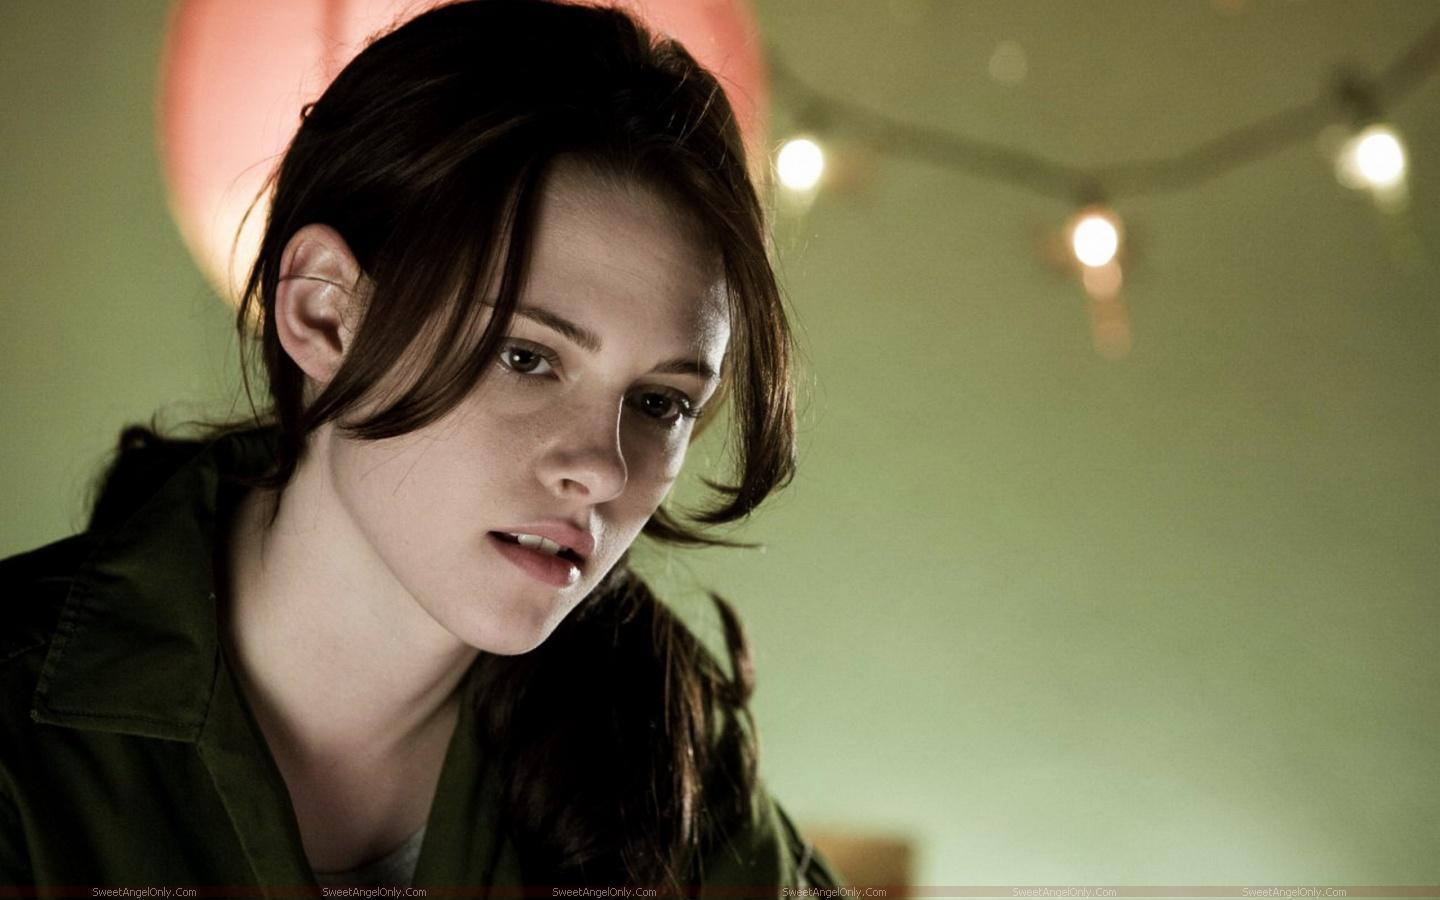 http://3.bp.blogspot.com/-Um_igf9qw68/TX4dvuN8fFI/AAAAAAAAFkM/IBDElspne4M/s1600/kristen_stewart_hollywood_hot_actress_wallpaper_sweetangelonly_09.jpg